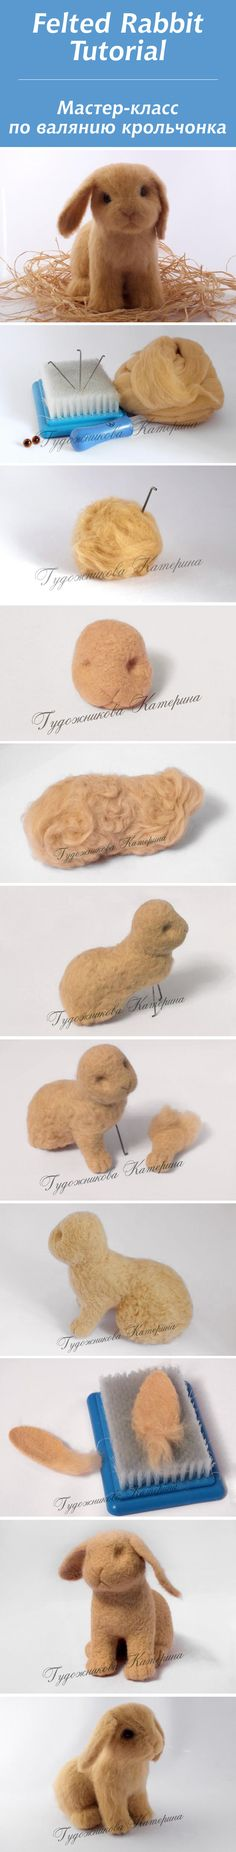 Felted Rabbit Tutorial